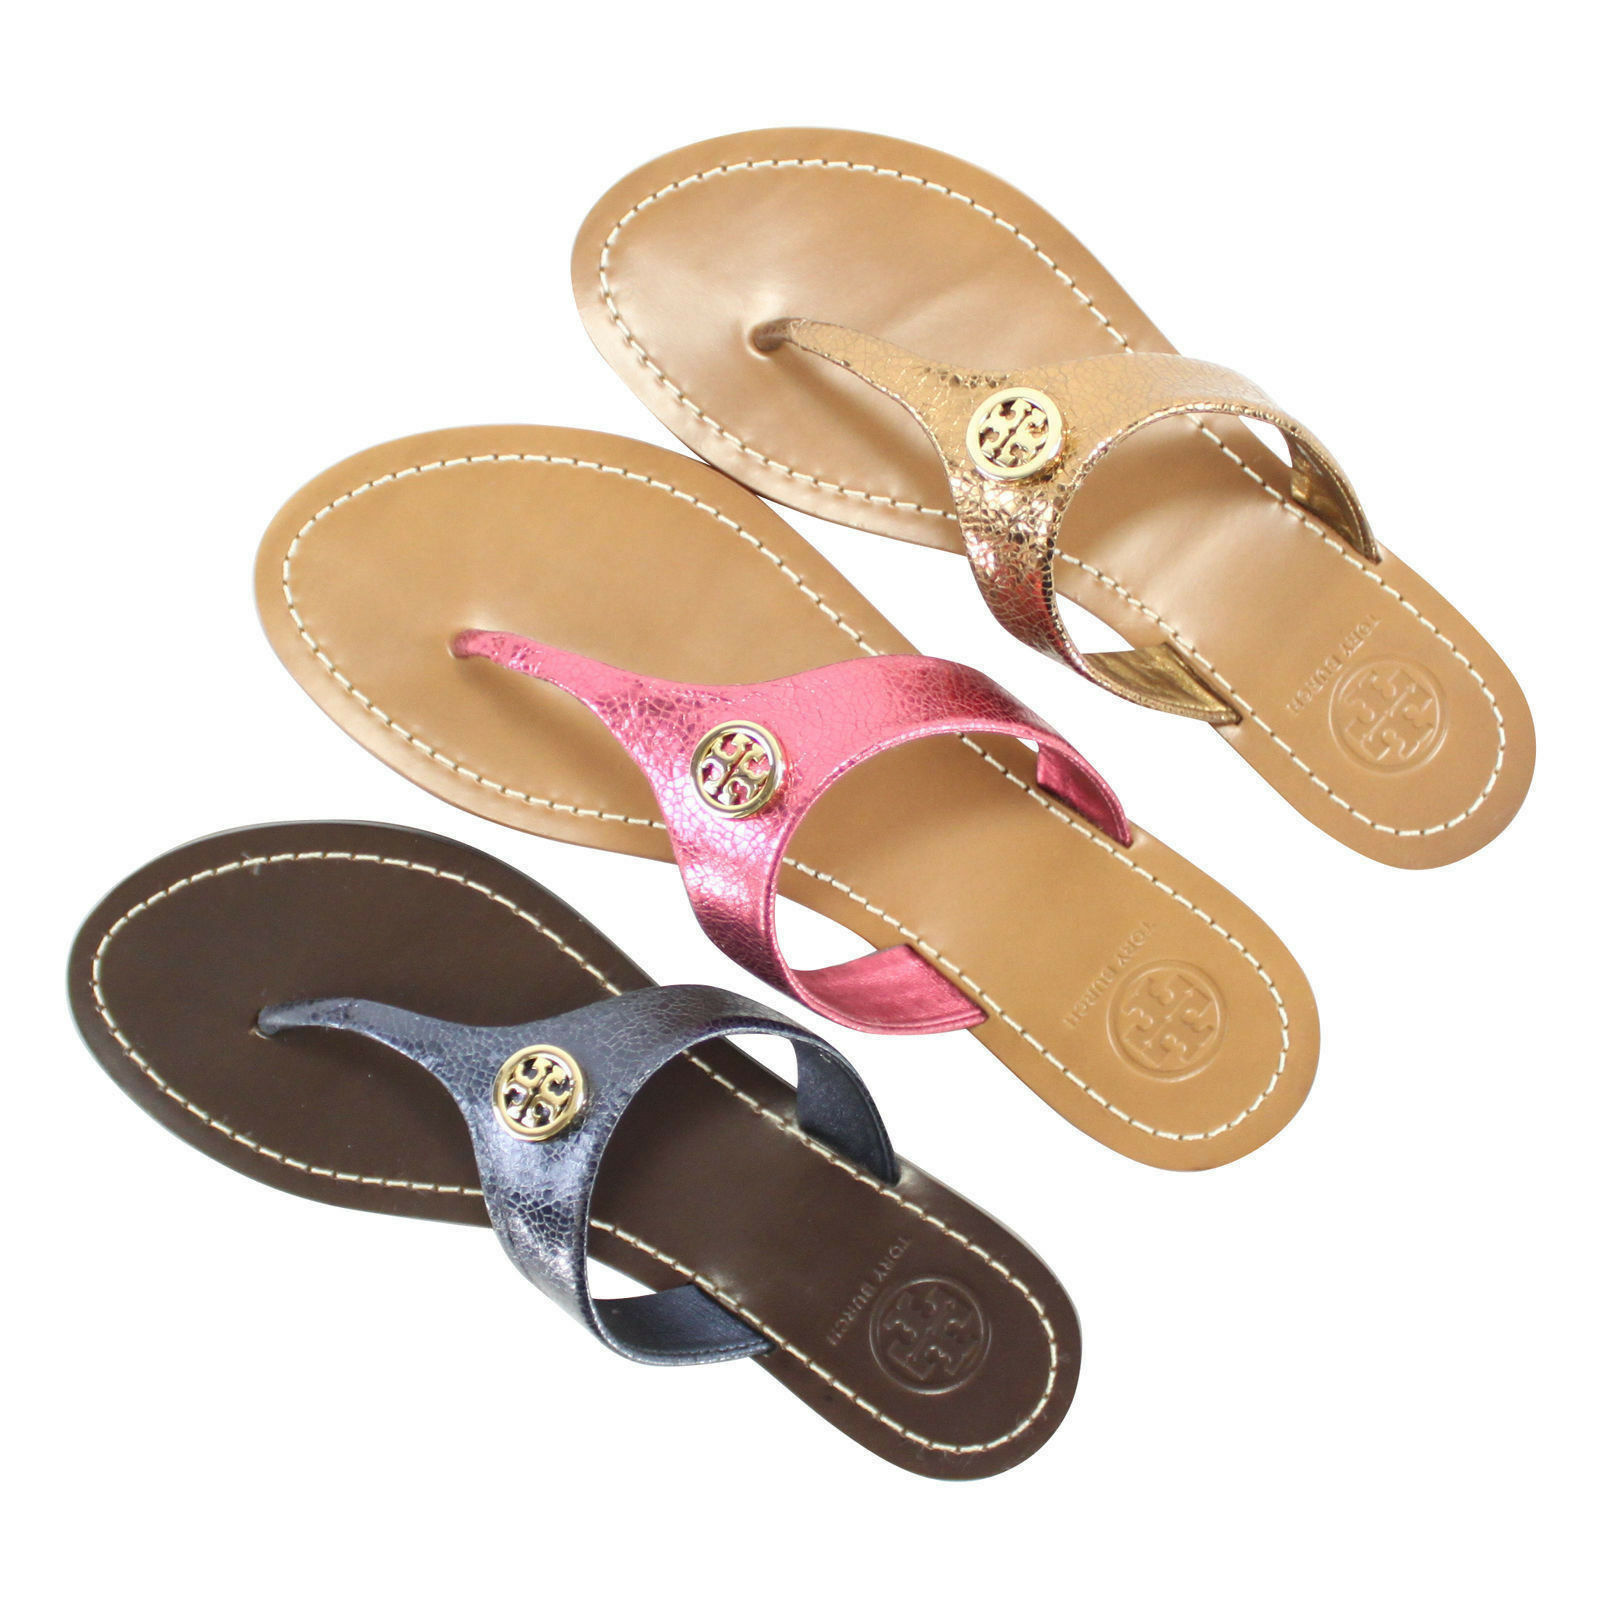 73d8146503c8 NEW Tory Burch Cameron Thong Mirror Craquelee Metallic Sandals Variety of  Colors